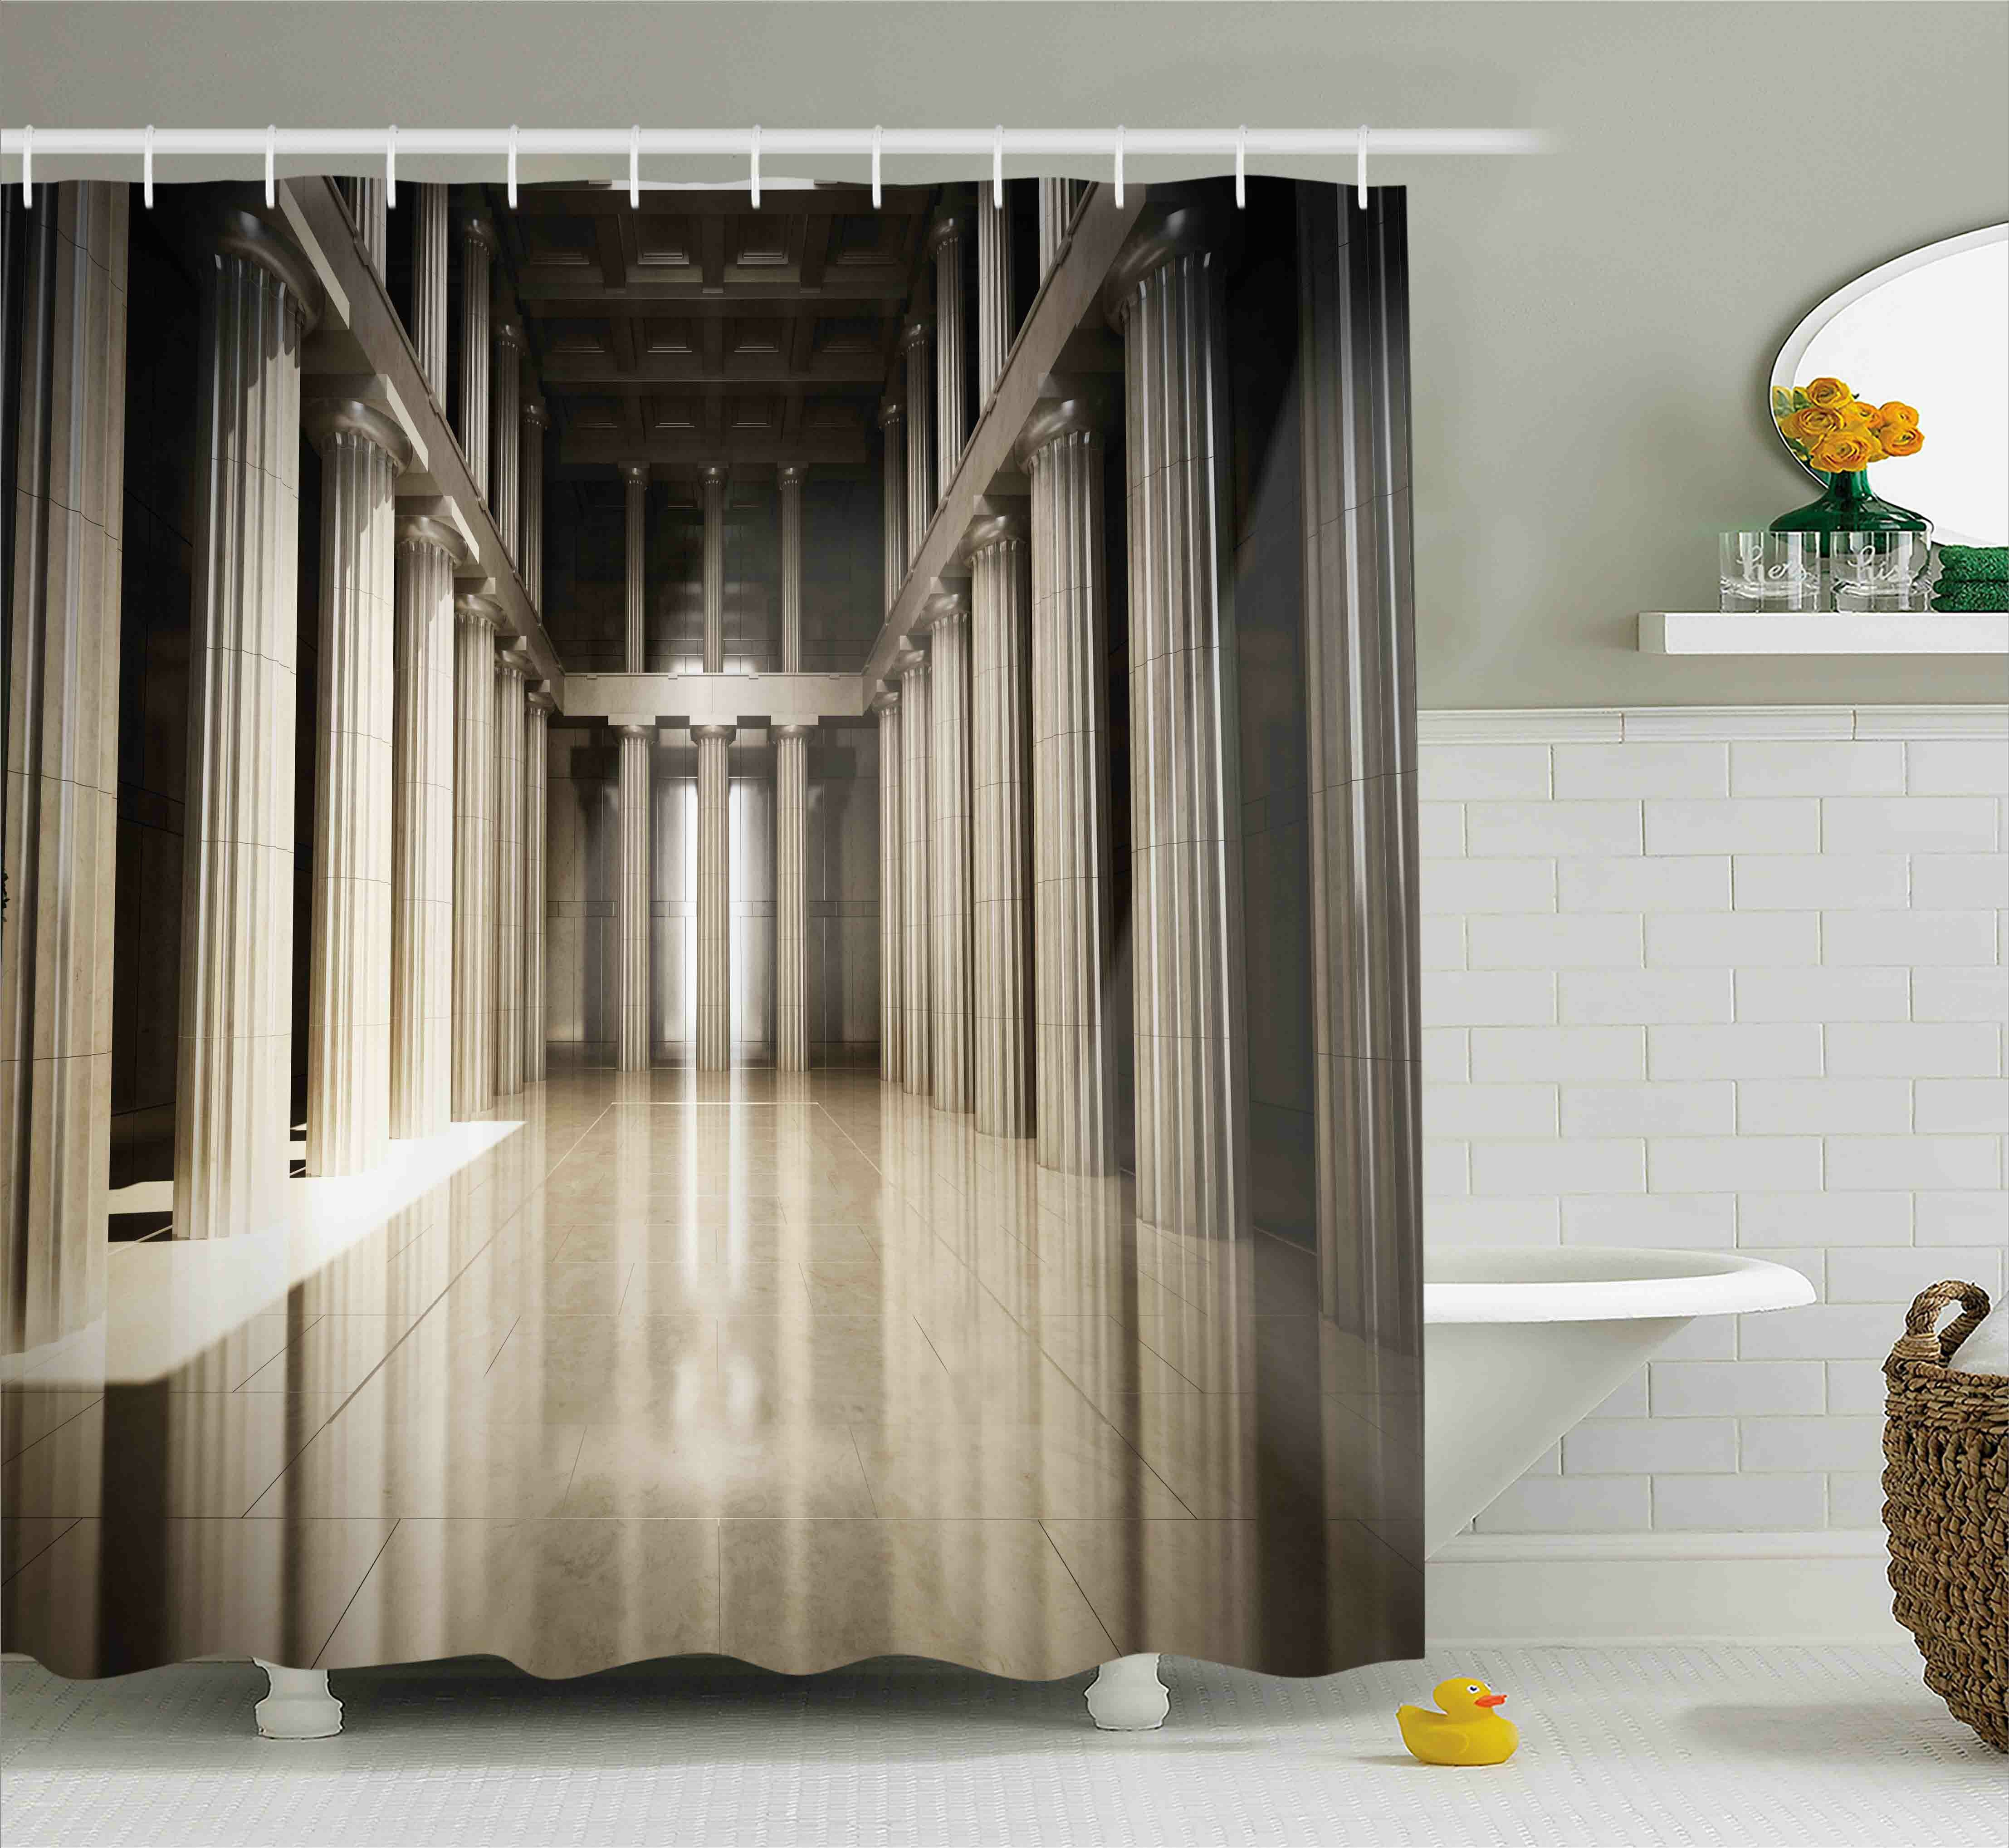 Ebern Designs Theresa 3D Model Style Column Interior Empty Room Digital  Image Decorative Design Shower Curtain | Wayfair